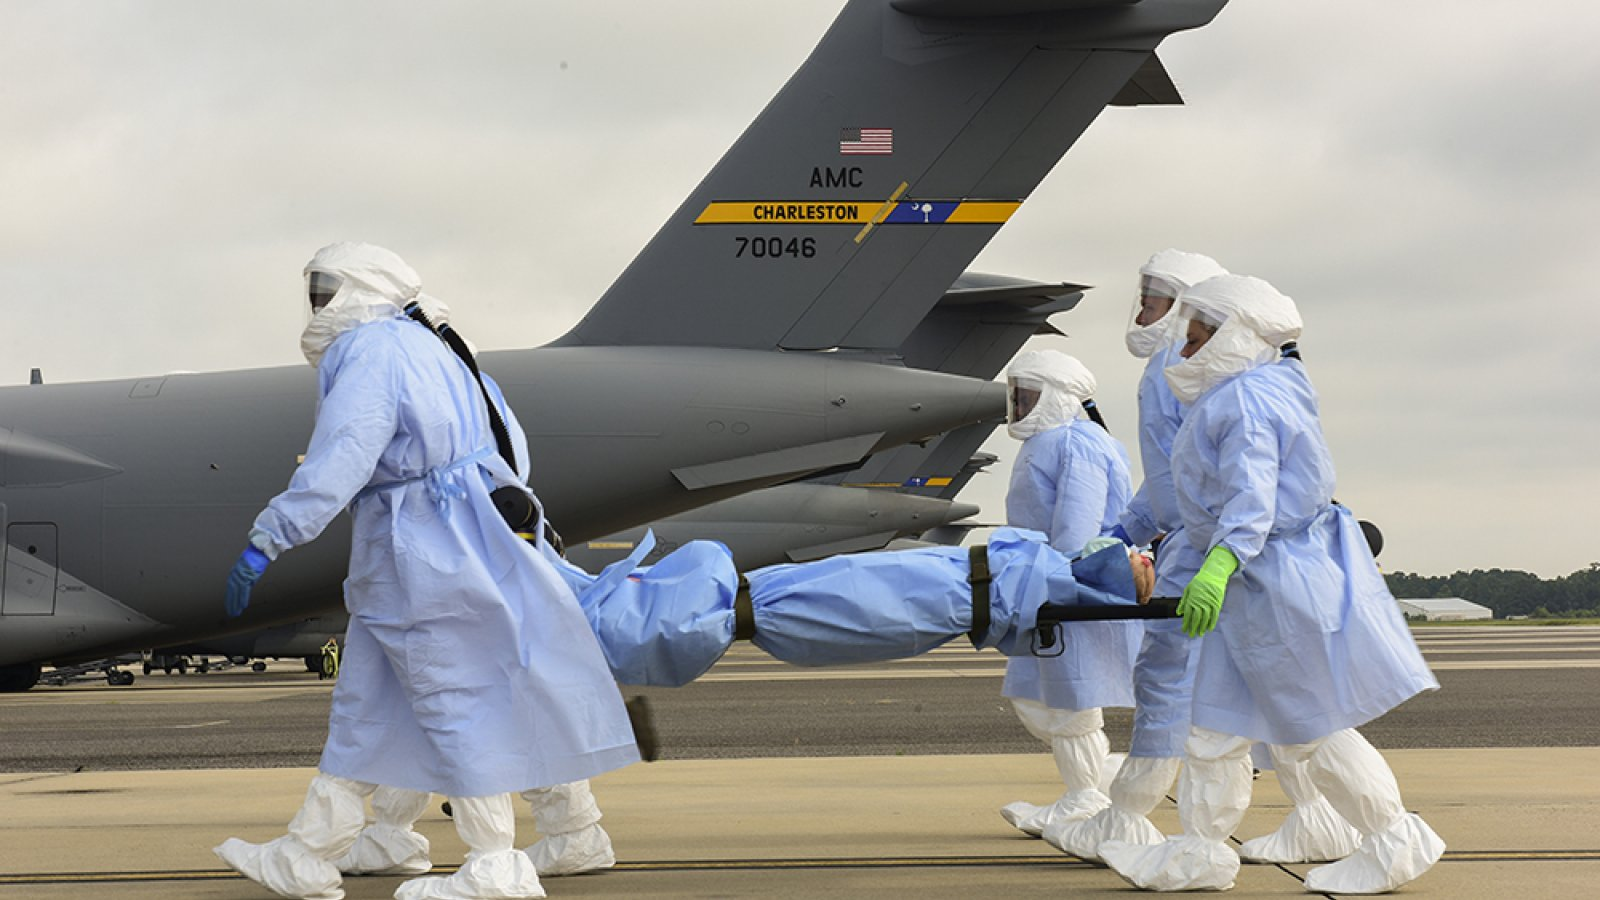 U.S. Air Force personnel carry a dummy on a stretcher during a 2018 simulated mission in which Durham School faculty Kelli Herstein and Terry Stentz studied the performance of personnel and equipment in missions to retrieve people exposed to infectious diseases.